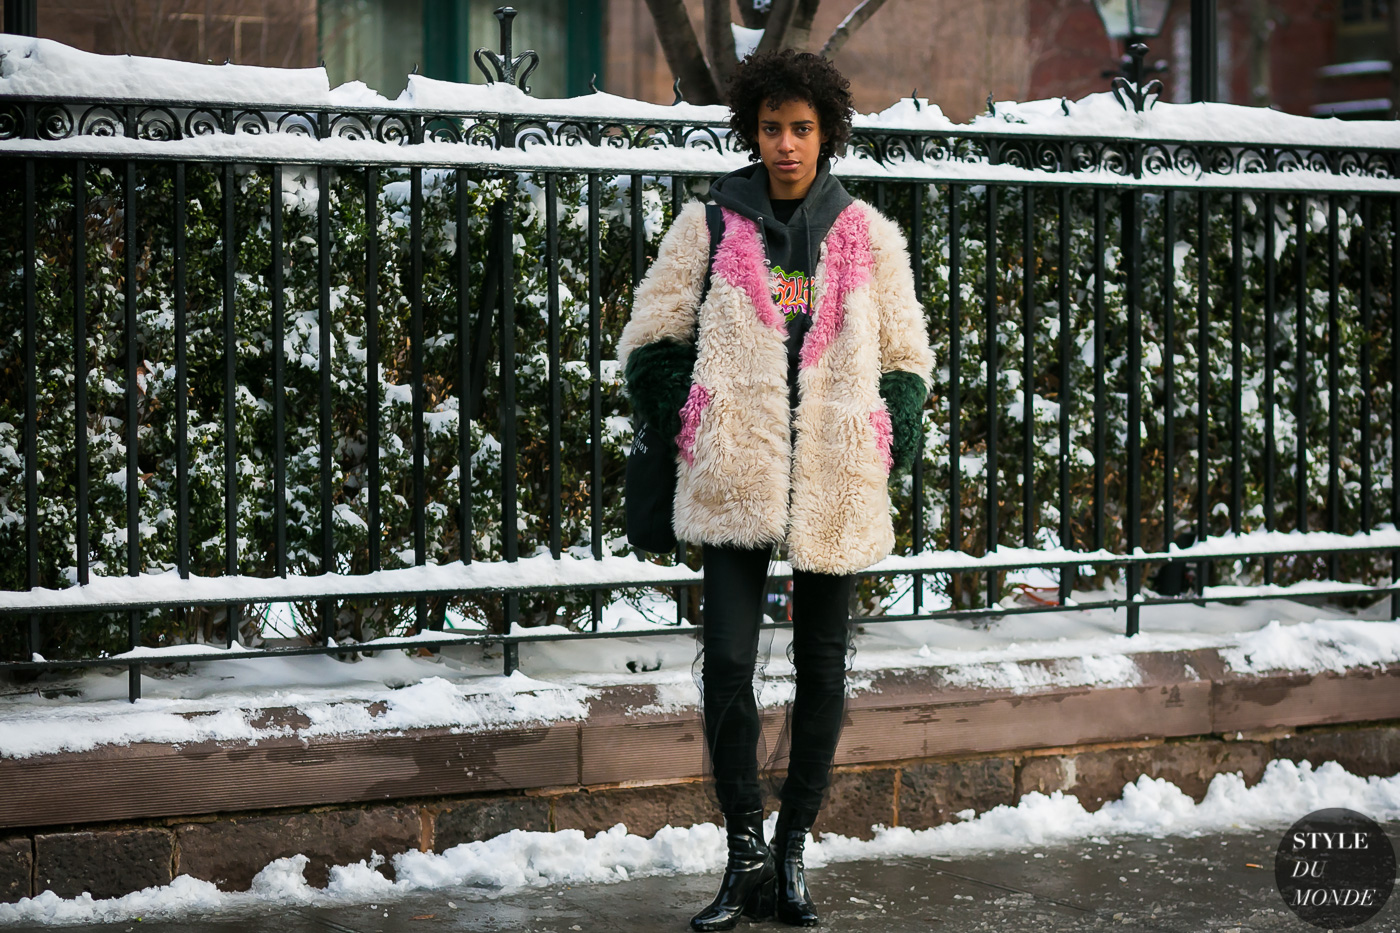 Model off duty by STYLEDUMONDE Street Style Fashion Photography0E2A6774